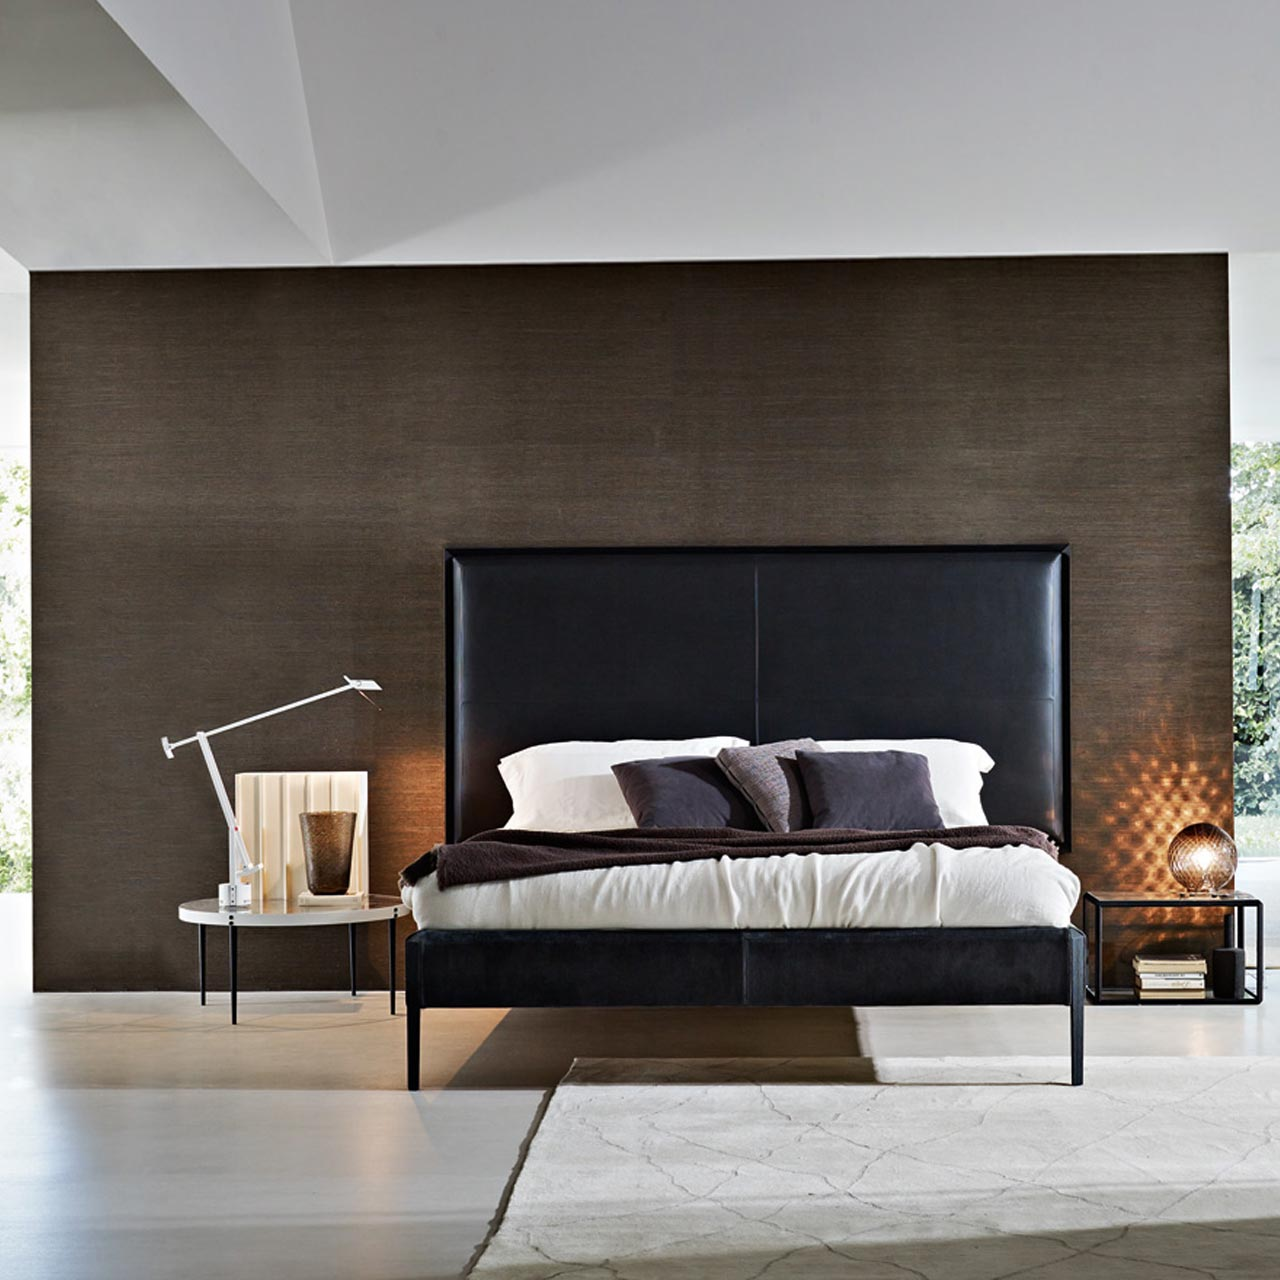 Molteni&C, Sweetdreams bed